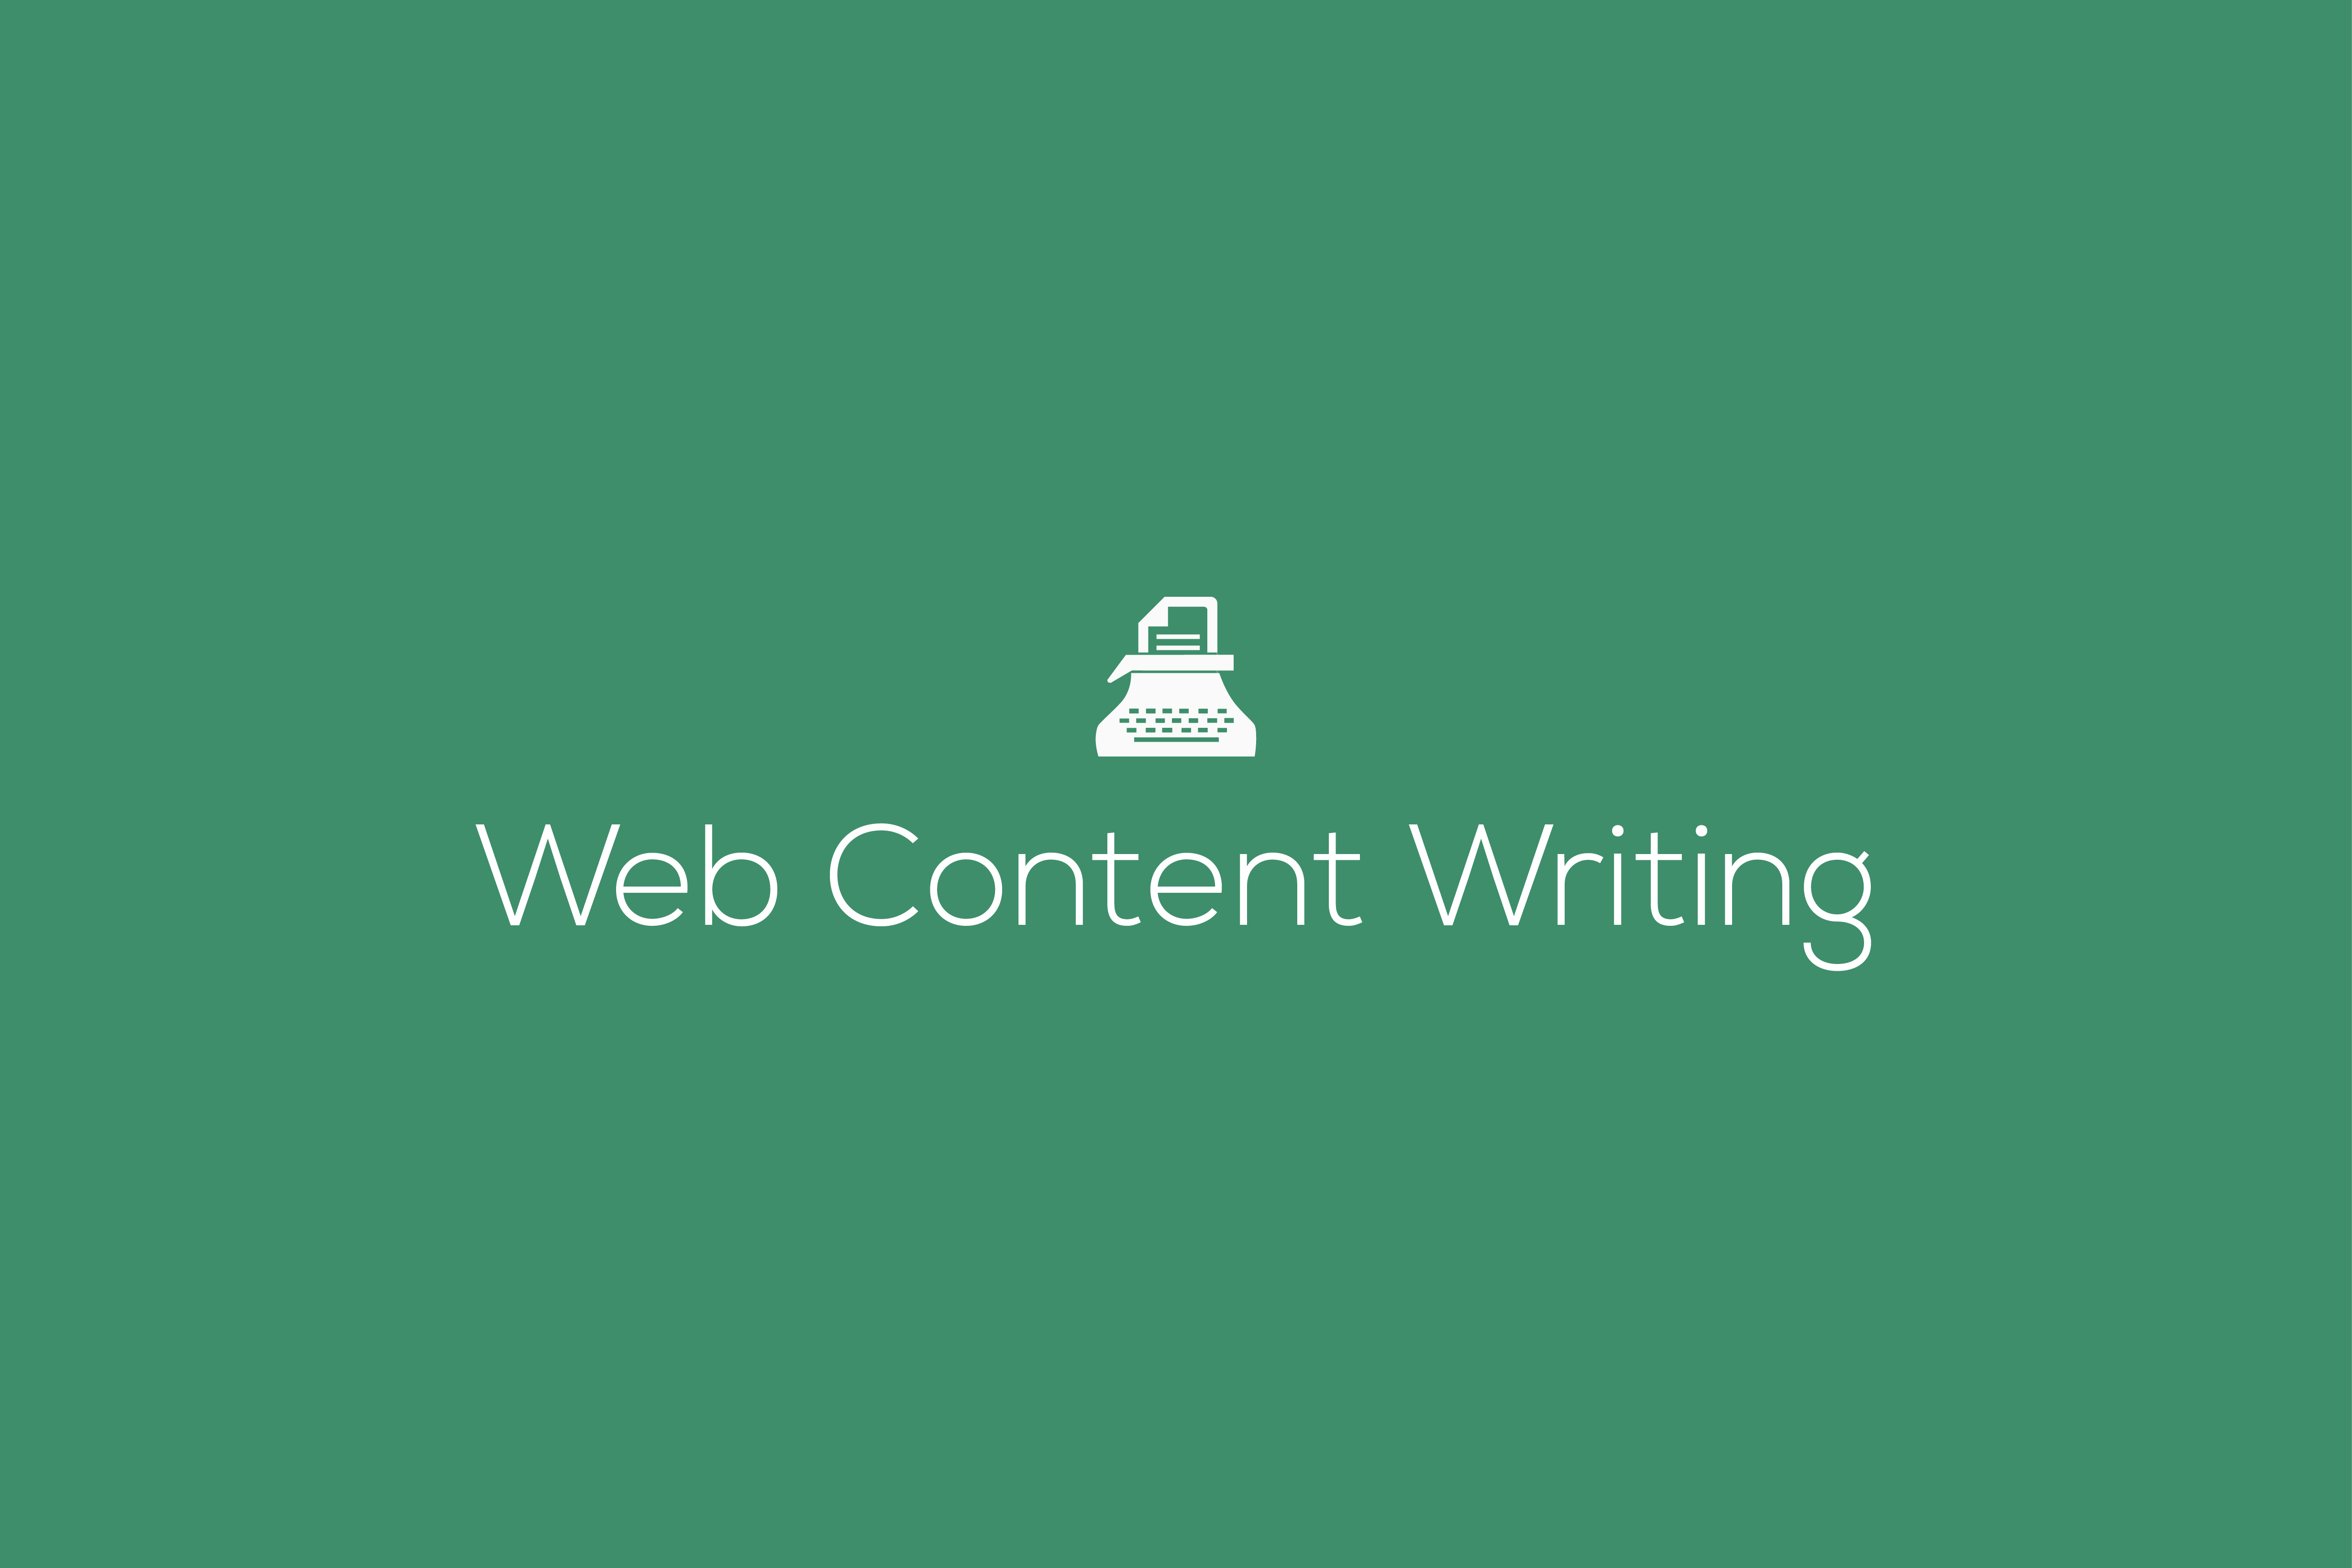 Web Content writing, website content writing service